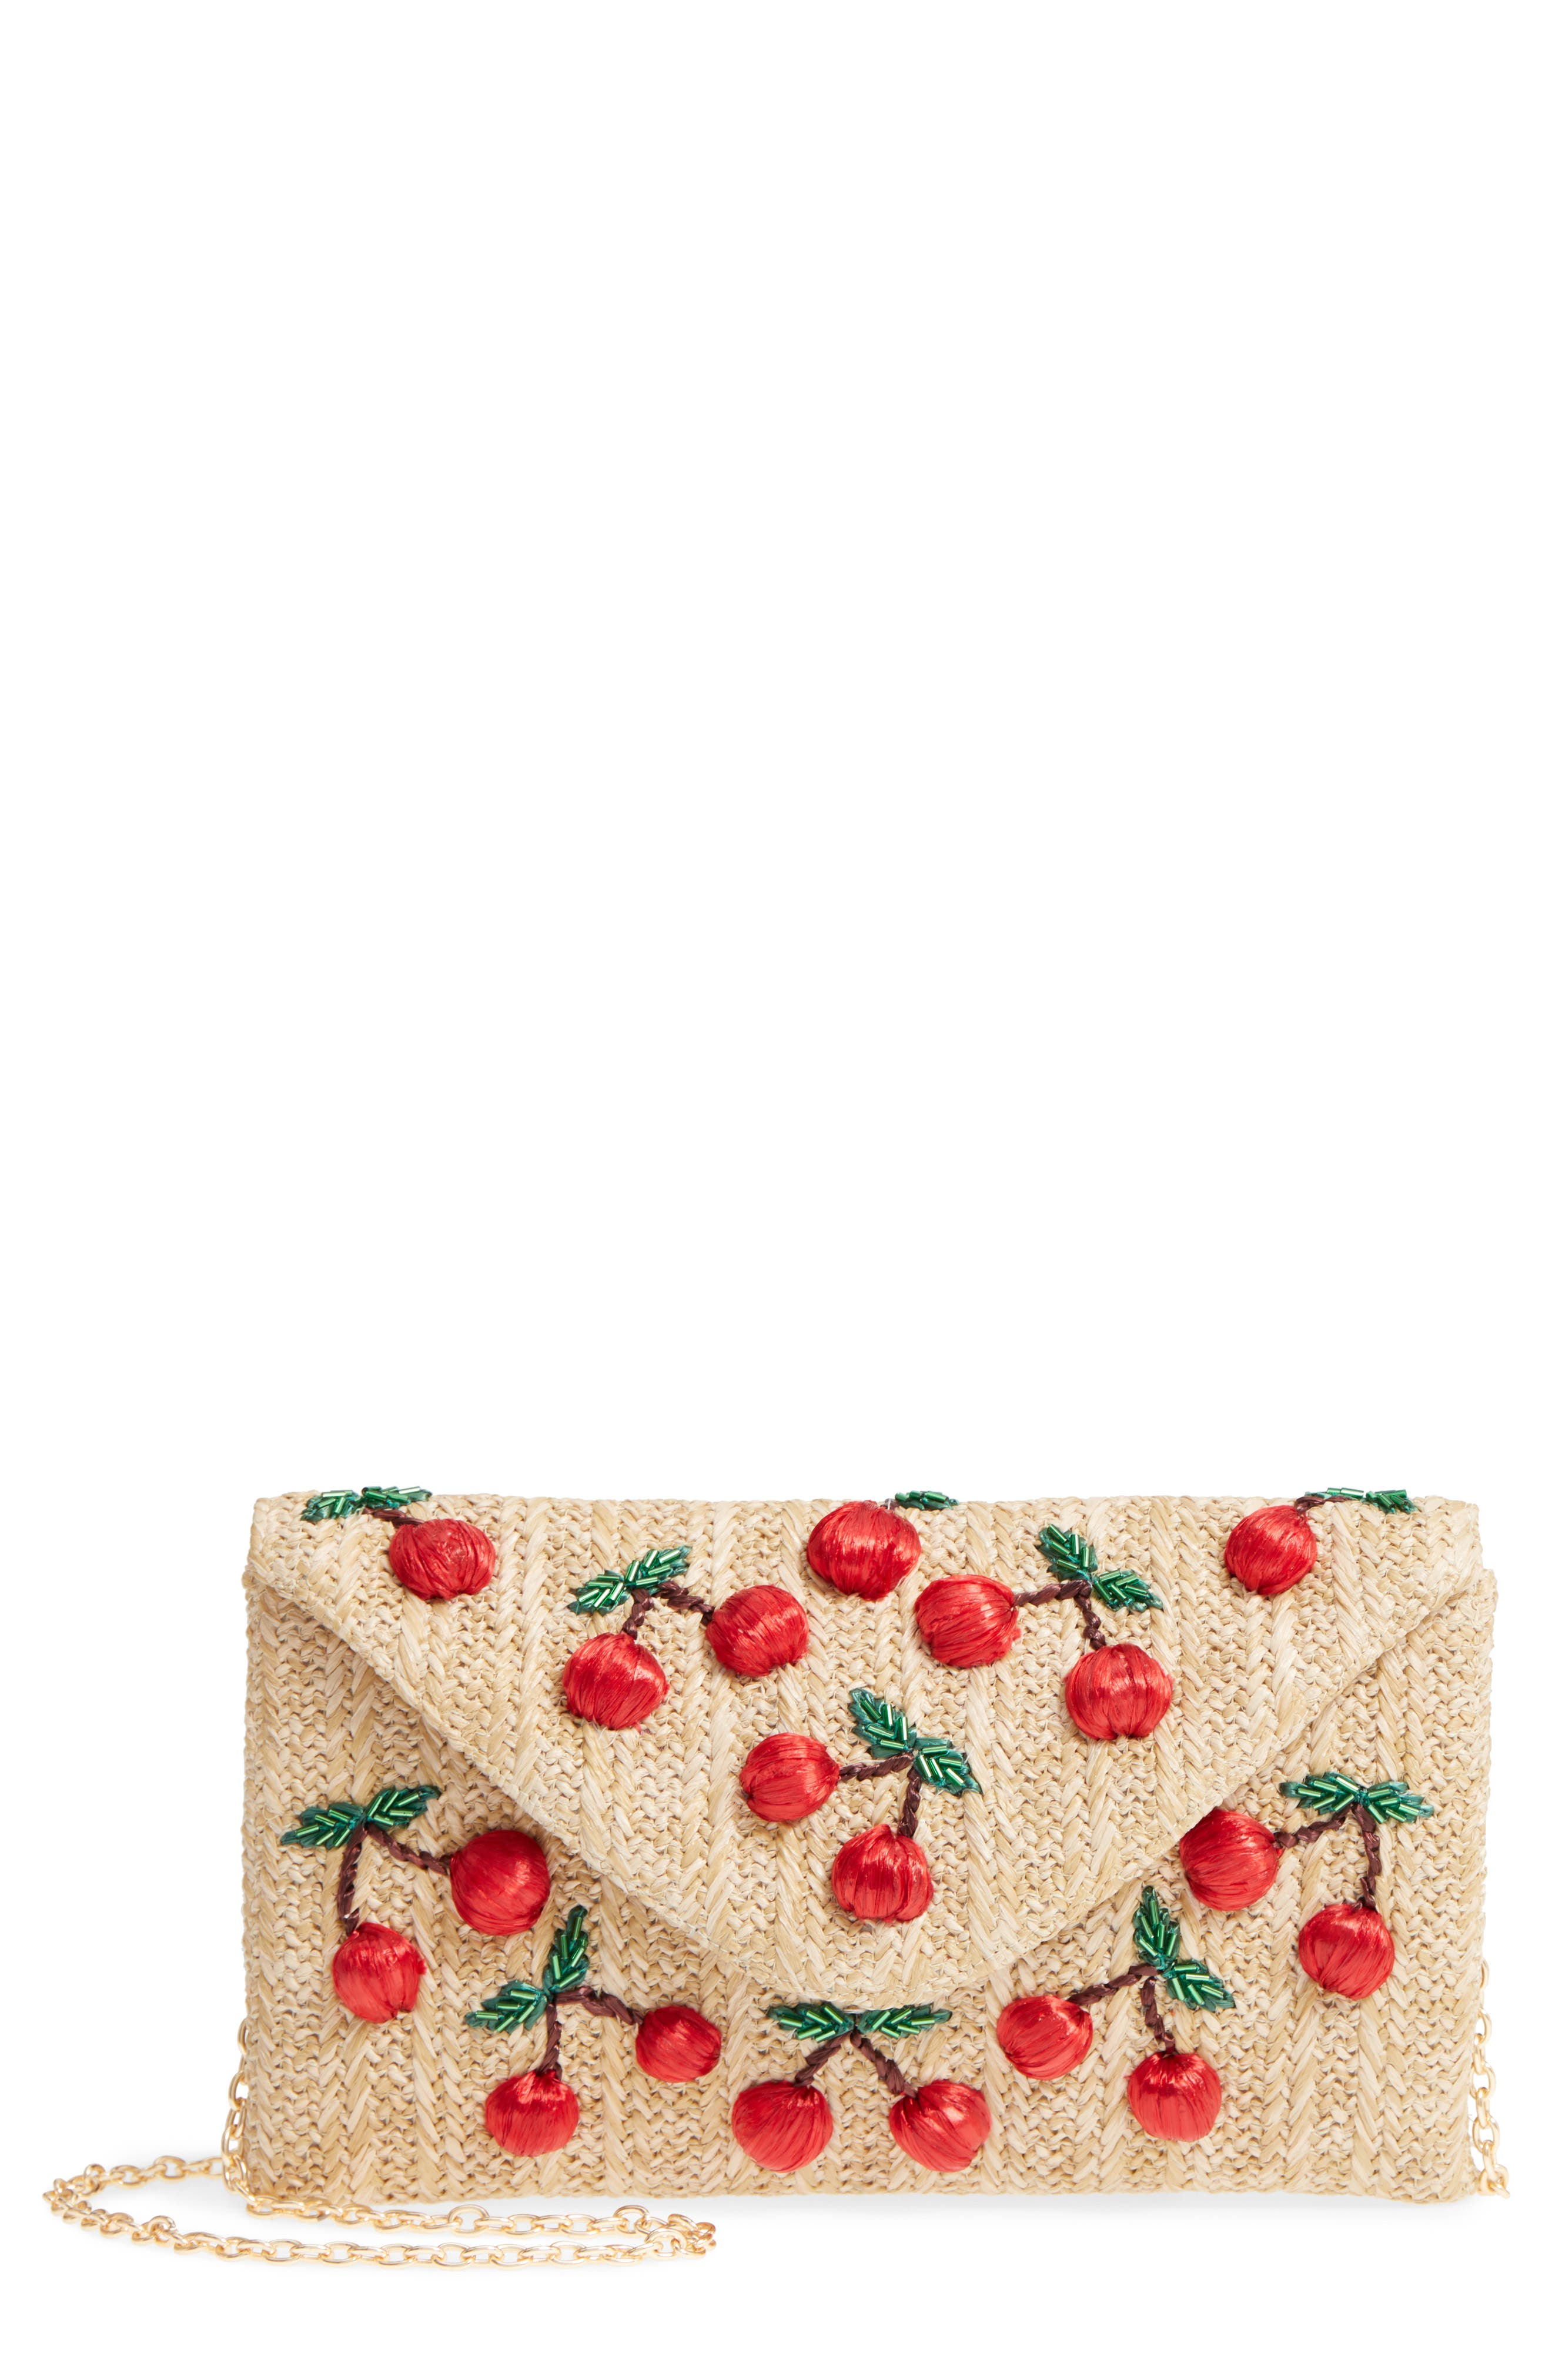 Cherry Embellished Straw Envelope Clutch,                             Main thumbnail 1, color,                             Natural